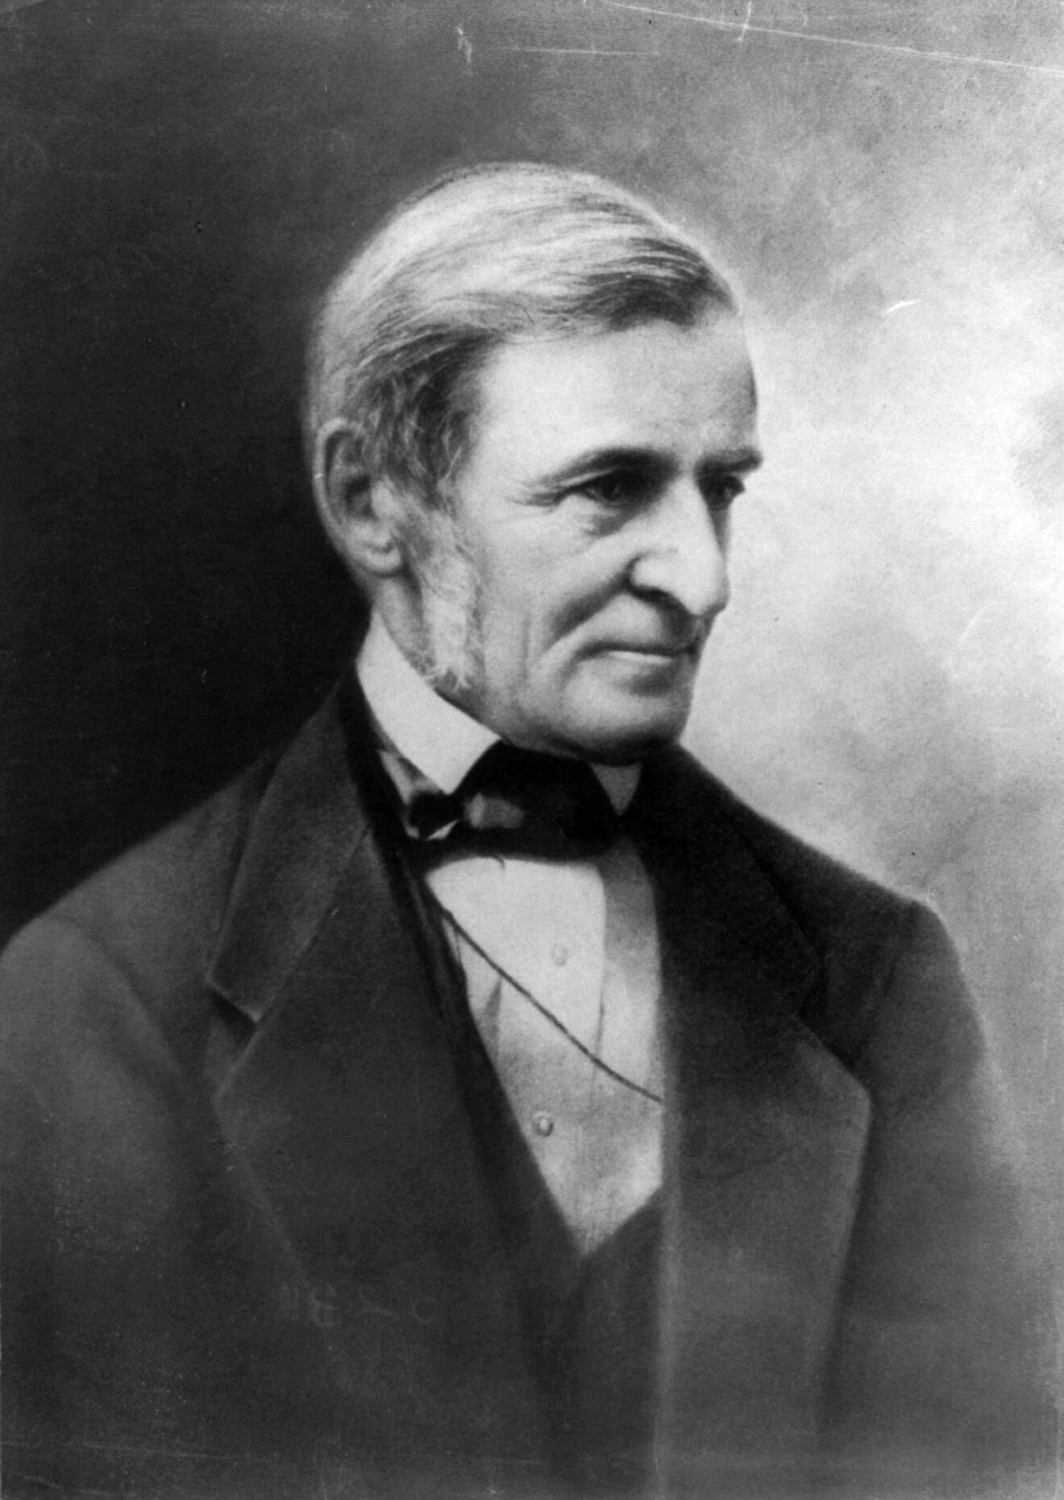 comparing emerson and dickinson The relationship between man and nature in emerson and thoreau  transcendentalism in emerson, thoreau, and dickinson's literature humans all have our own interpretation of life transcendentalism is the idea that our souls have with nature and that our ideas go beyond the aspect of the world as we see it  comparing ralph waldo emerson.